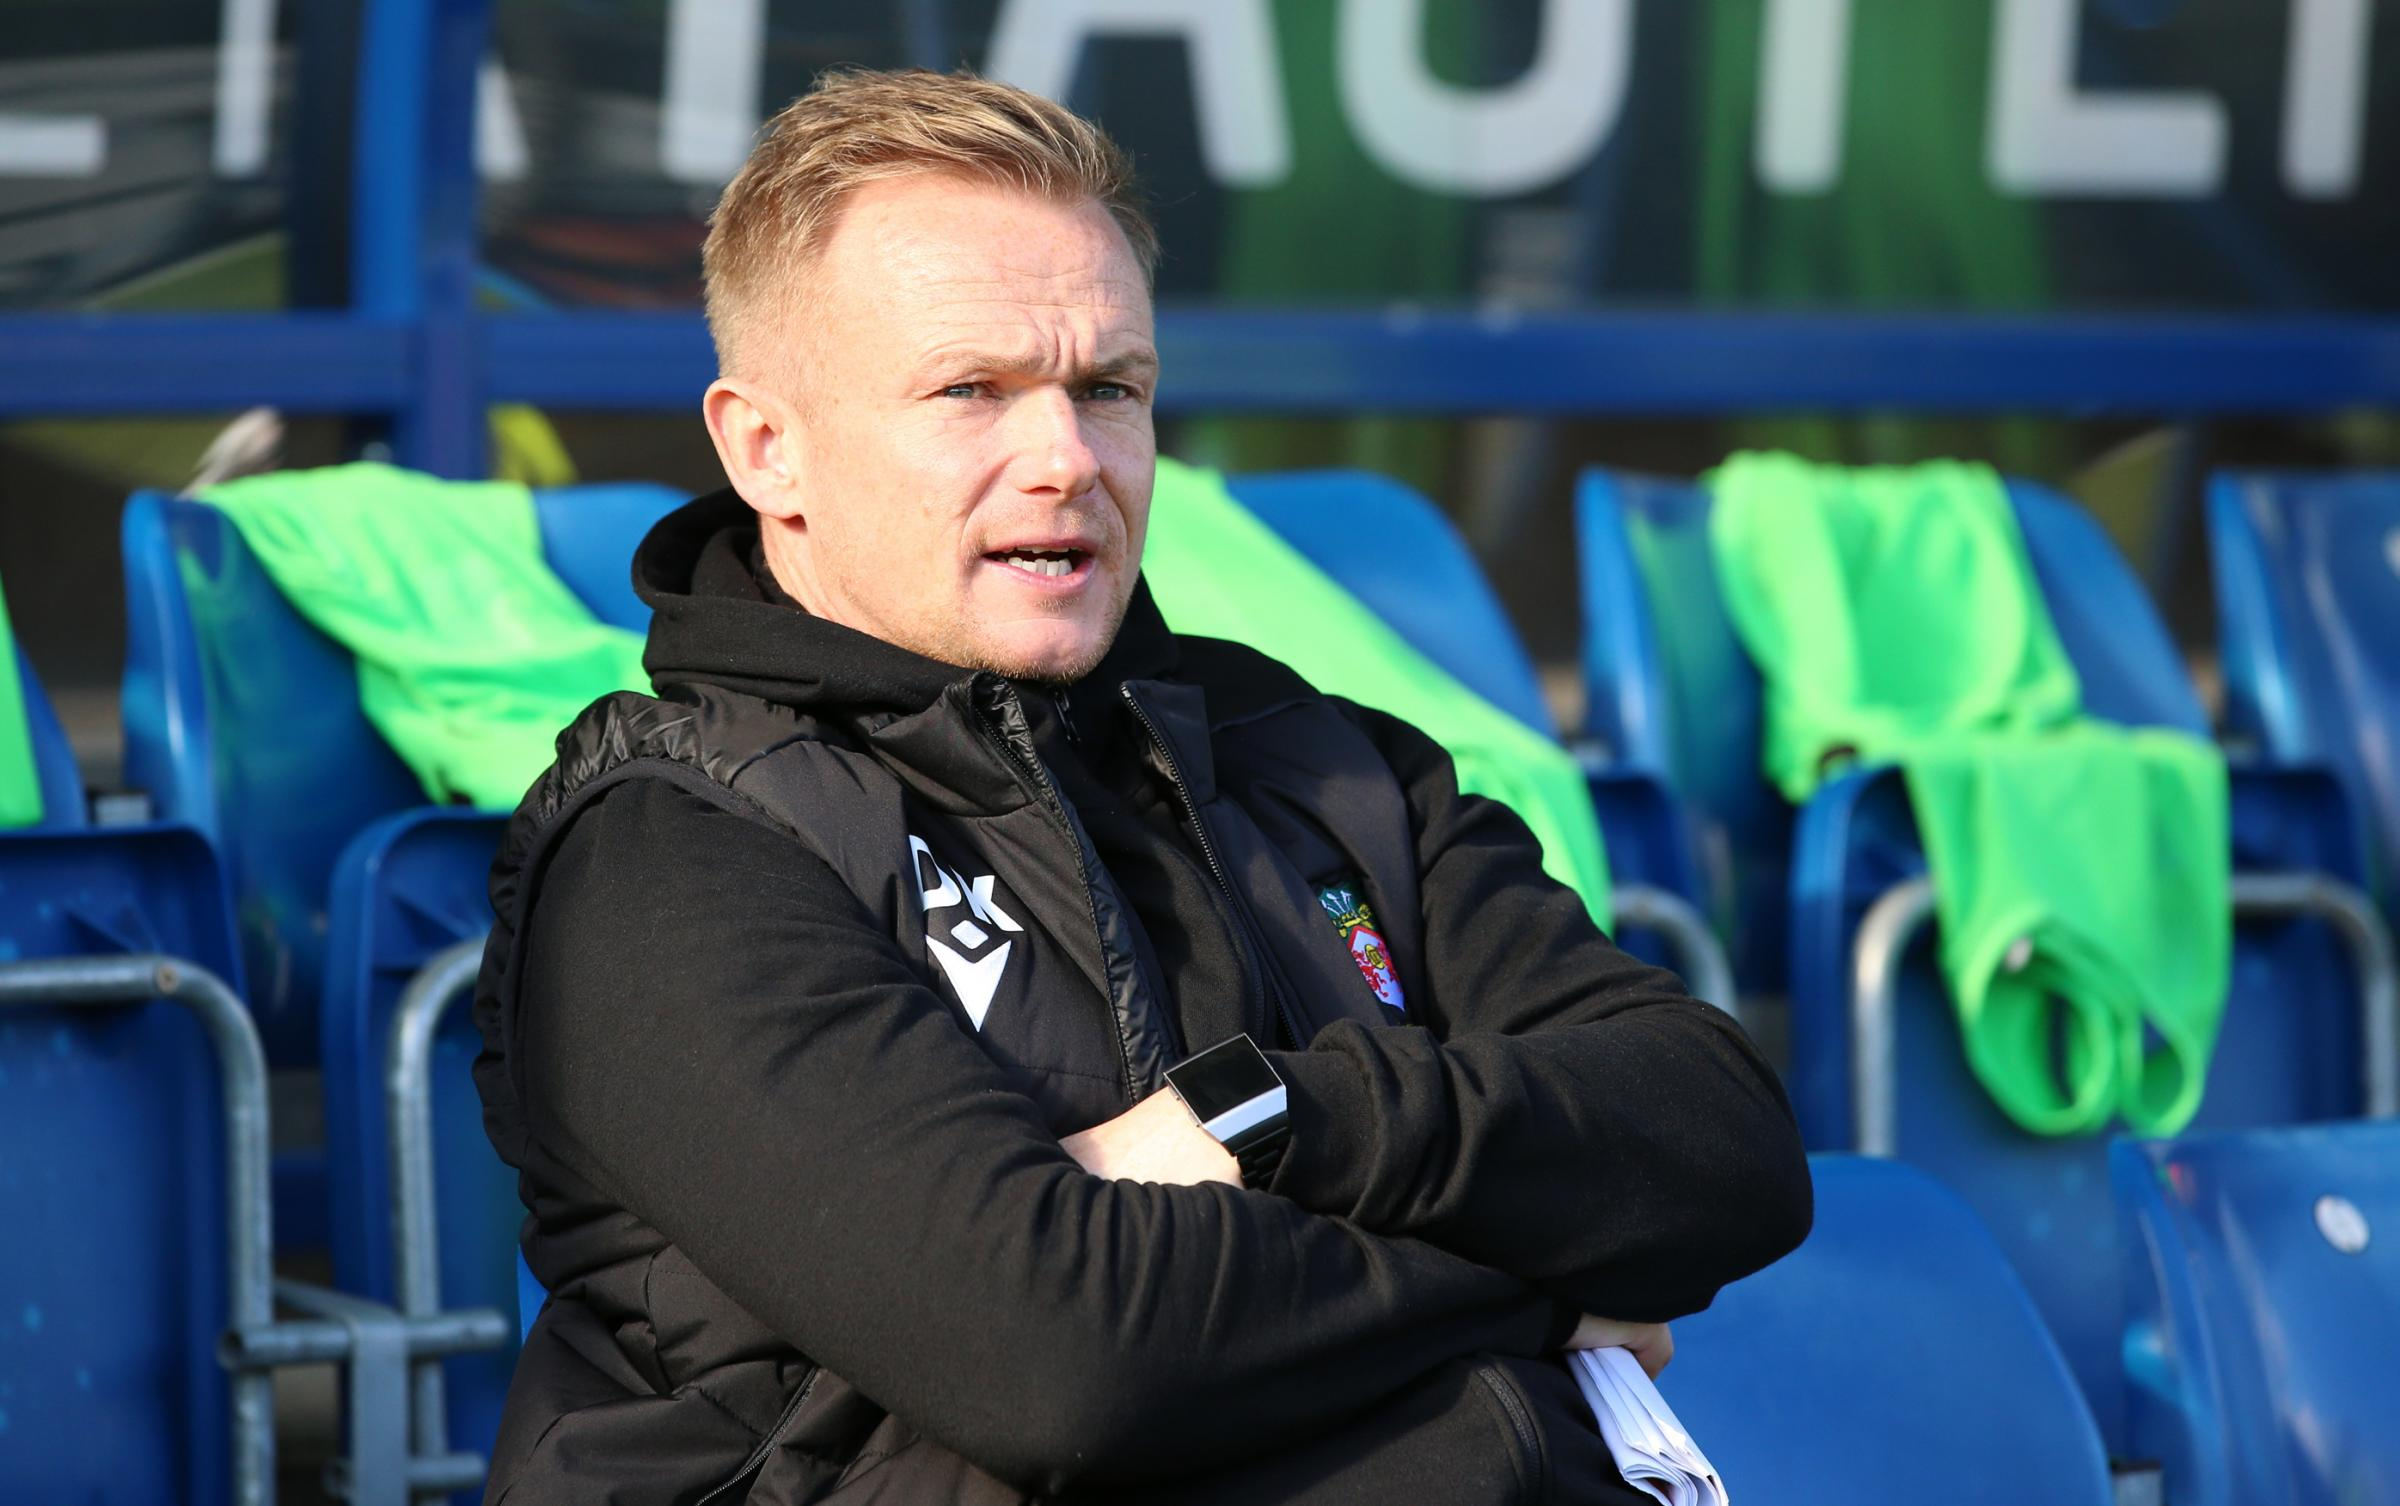 Wrexham AFC manager Dean Keates says players need to deal with the high expectations